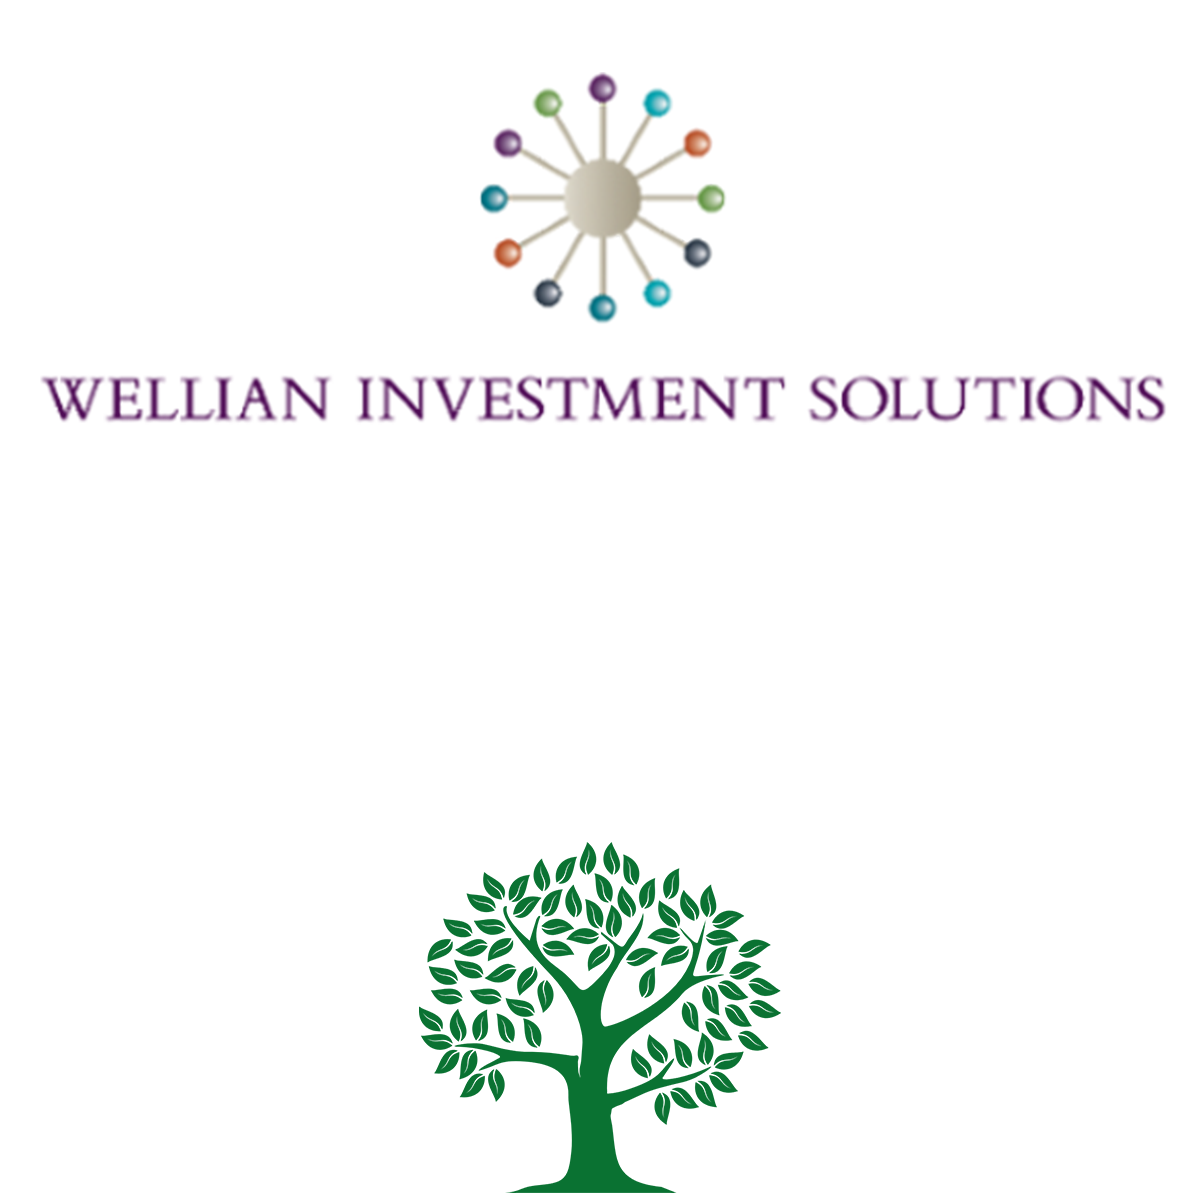 Wellian Investment Solutions